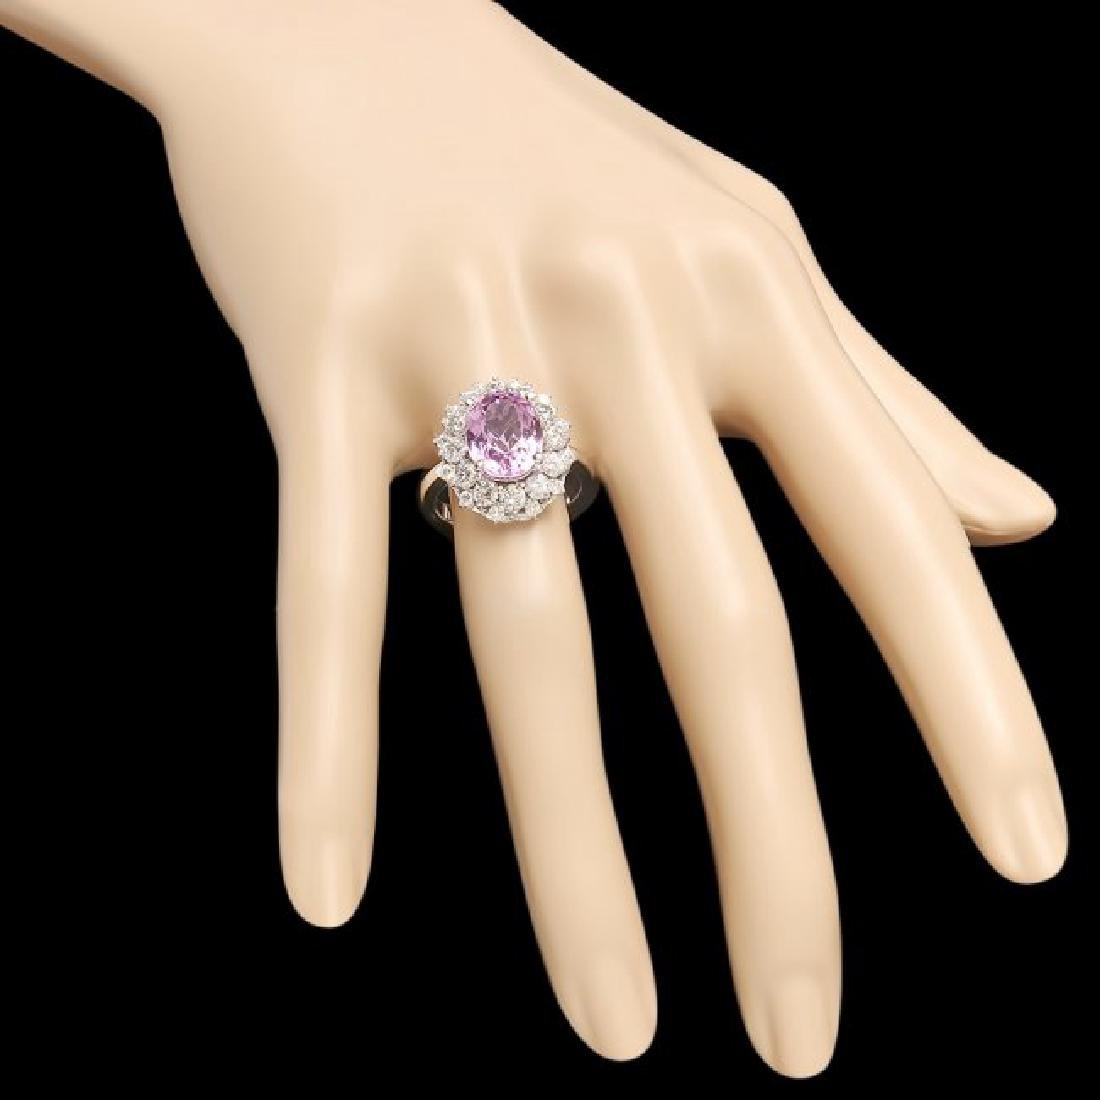 14k White Gold 4.50ct Kunzite 1.60ct Diamond Ring - 3